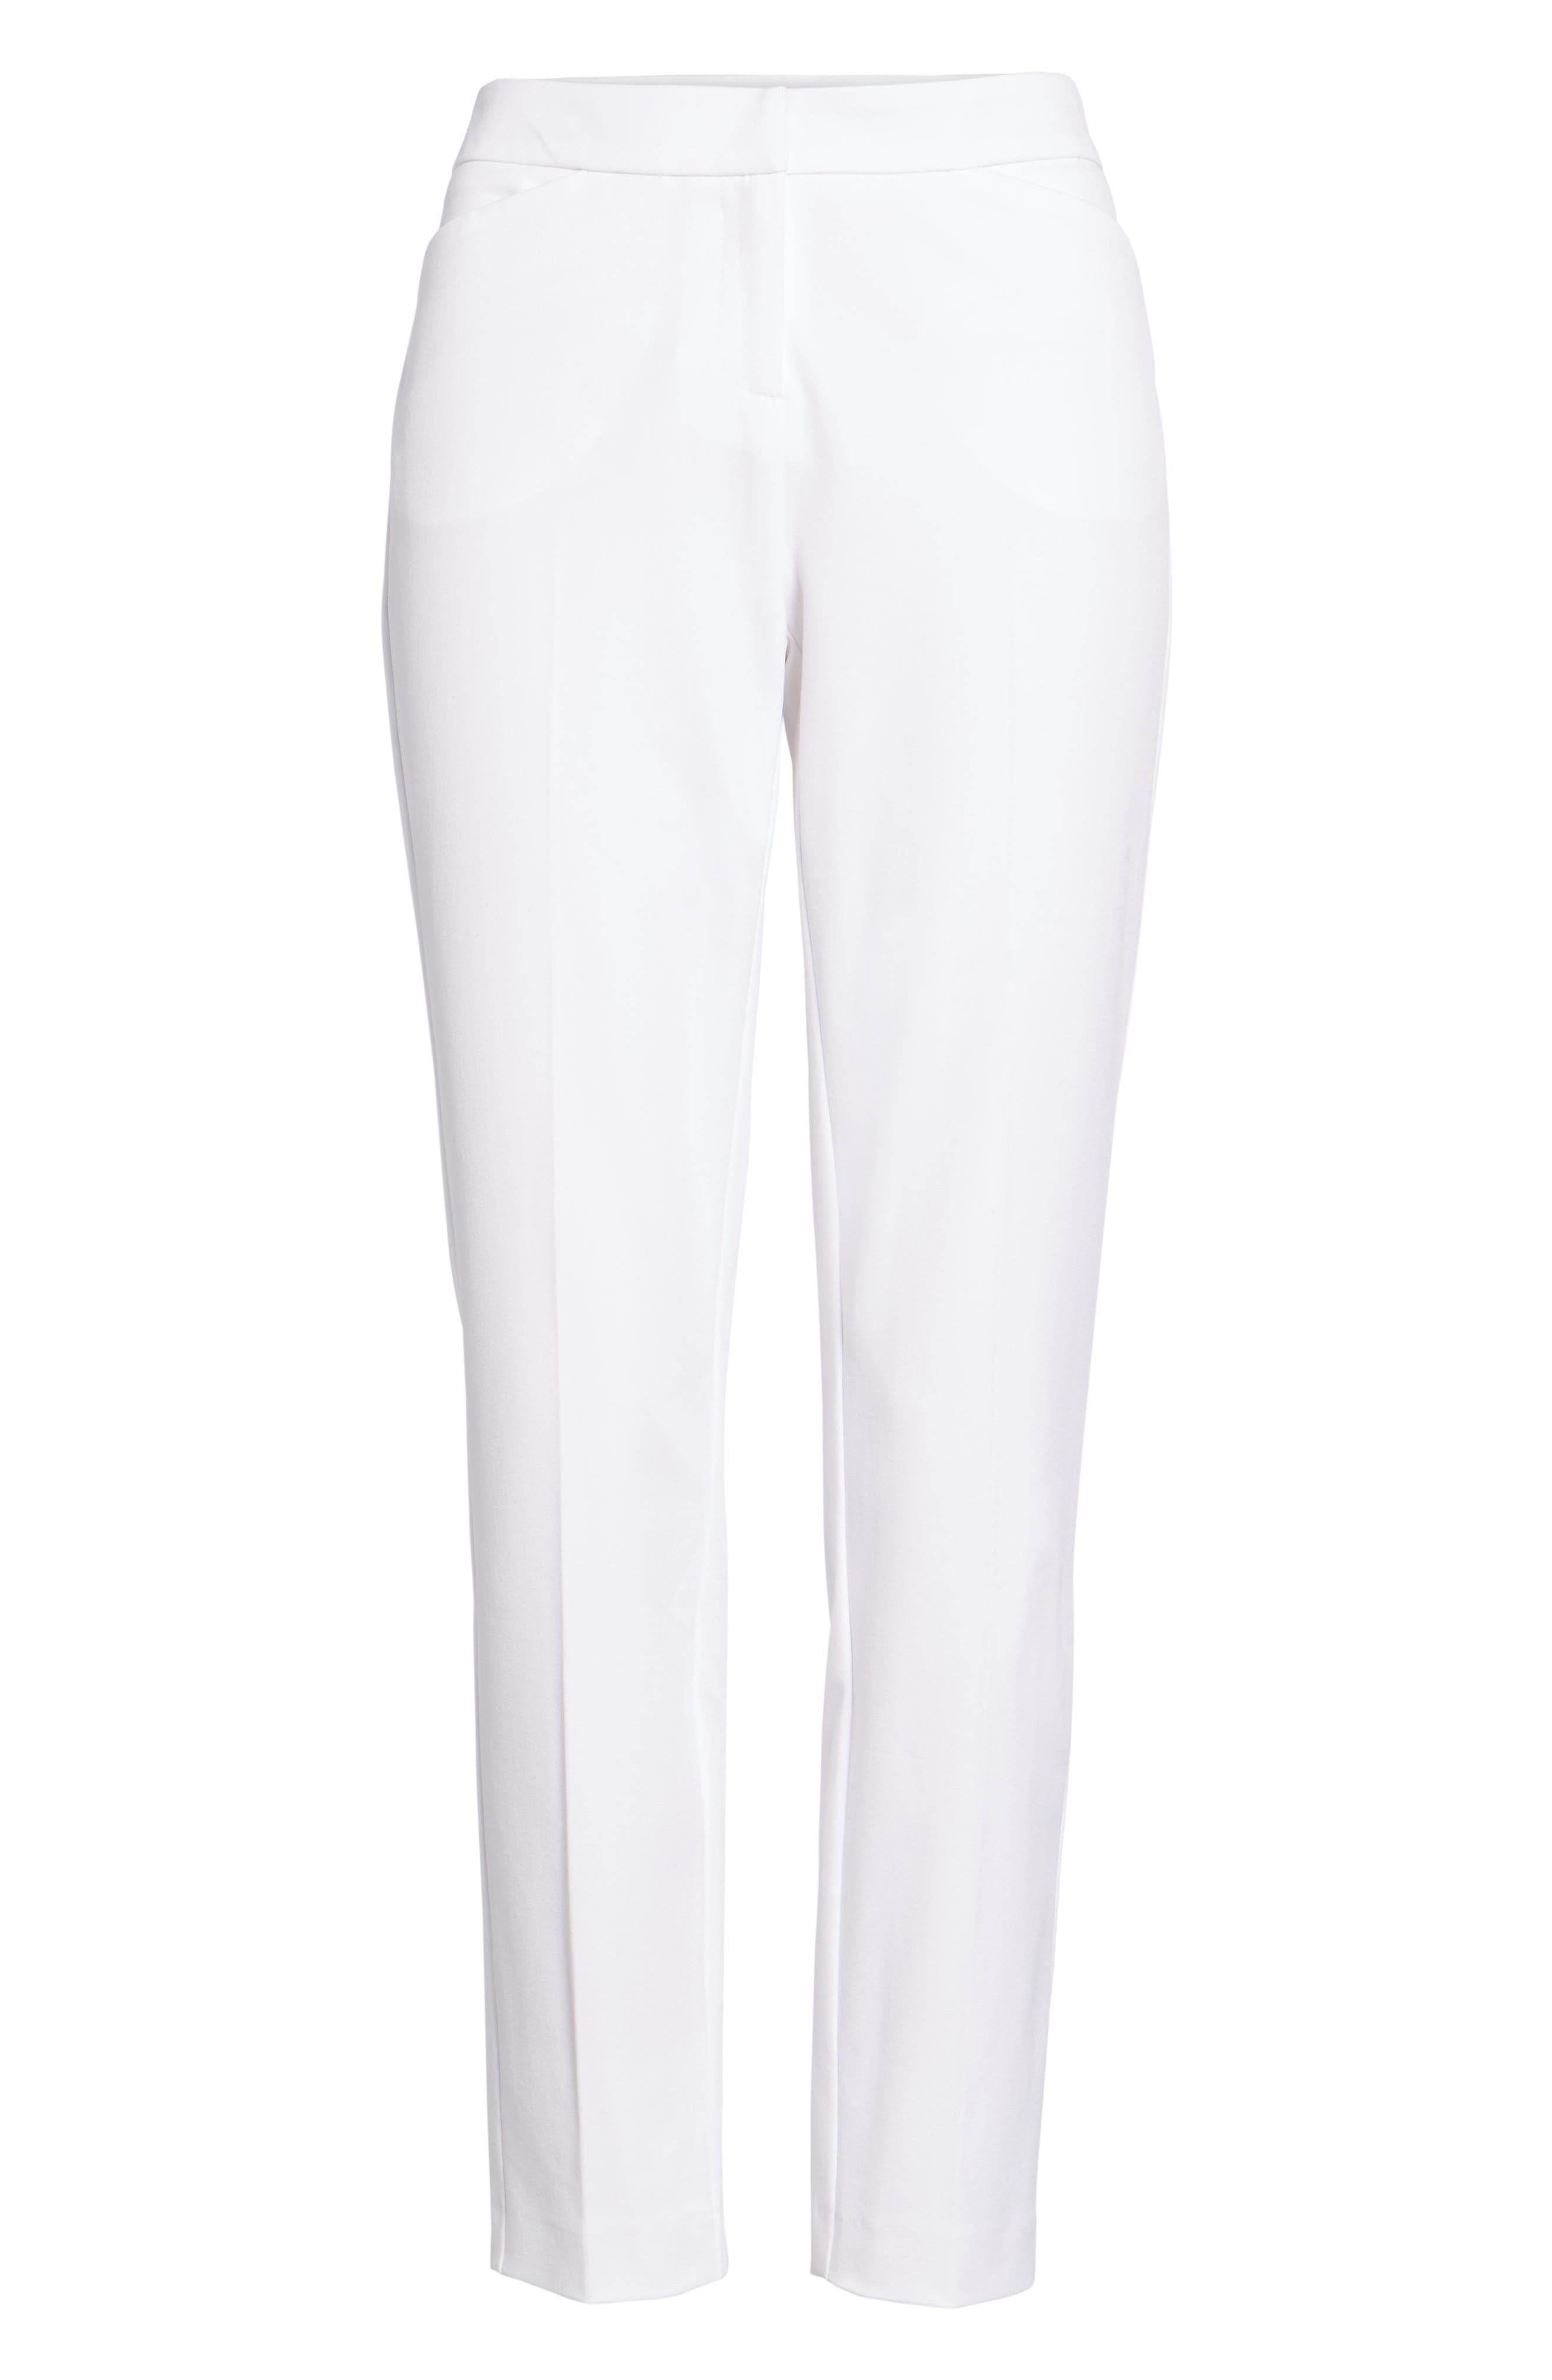 Ankle Pants,                             Alternate thumbnail 7, color,                             White